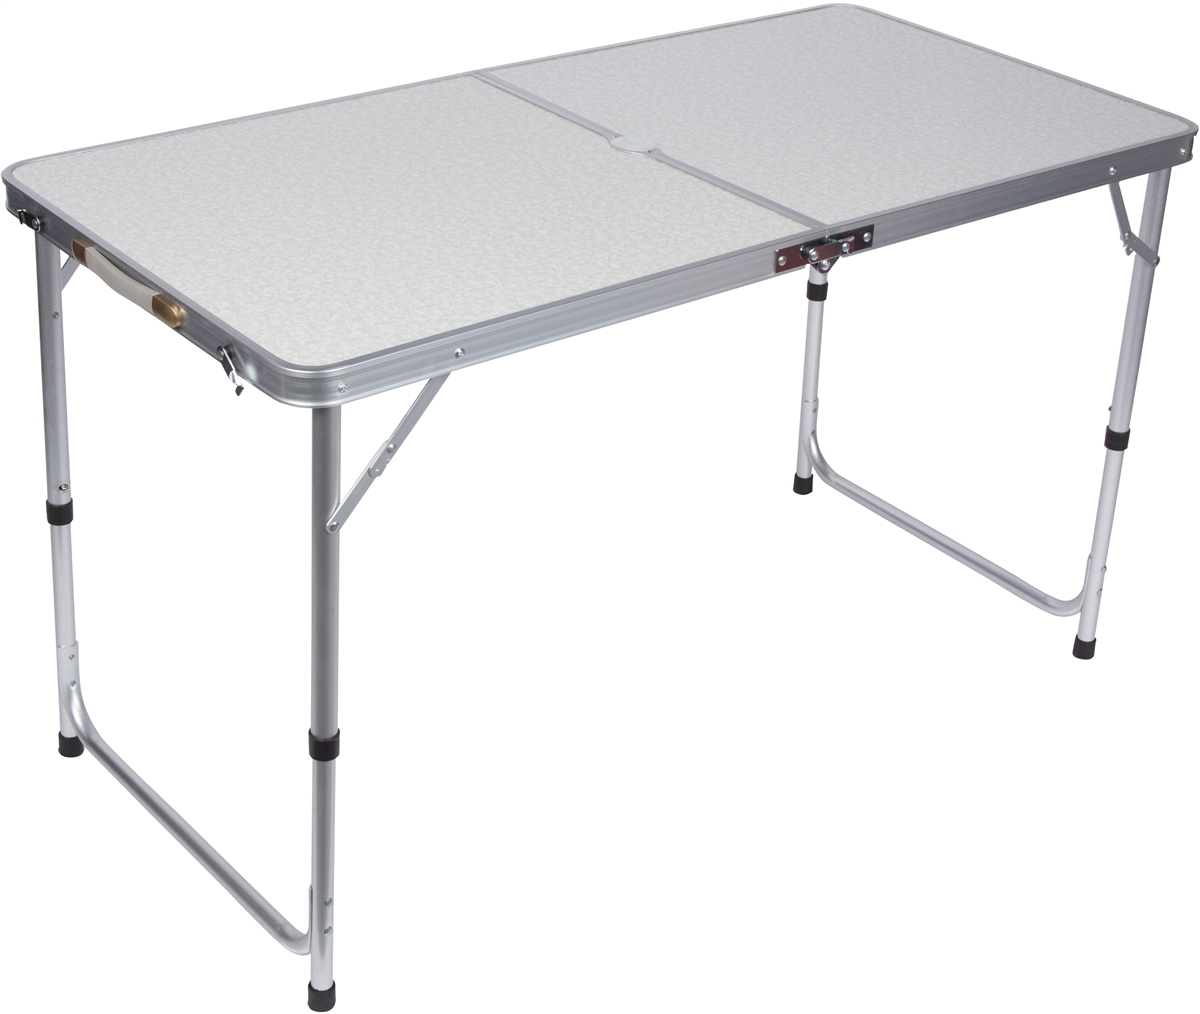 Lightweight Adjustable Portable Folding Aluminum Camp Table with